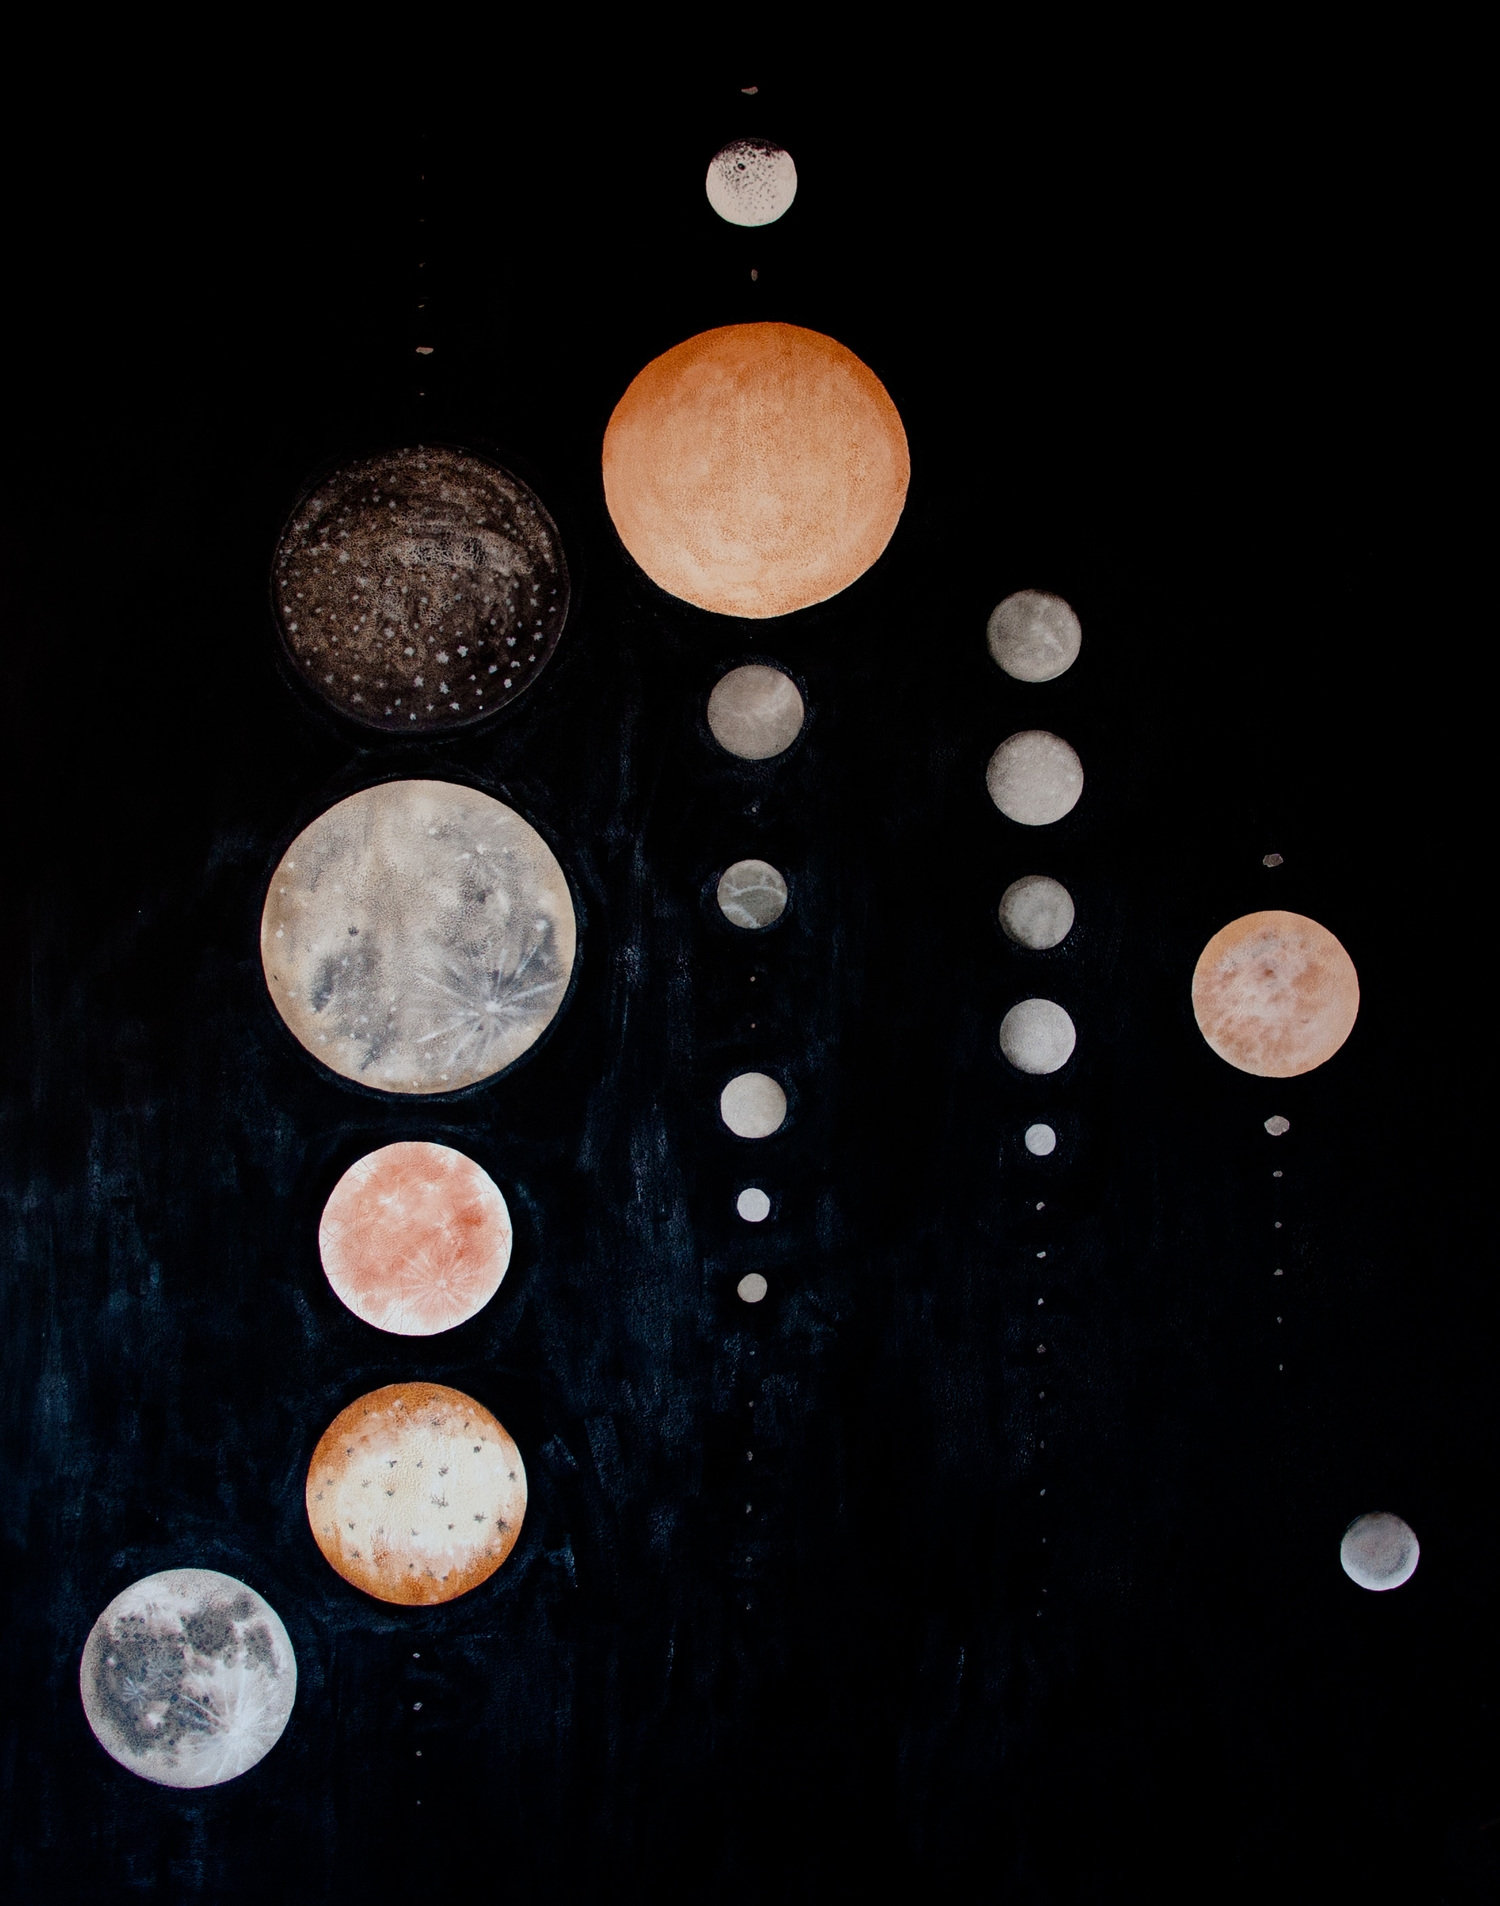 all the moons of our solar system, to scale, in order of closeness to the sun